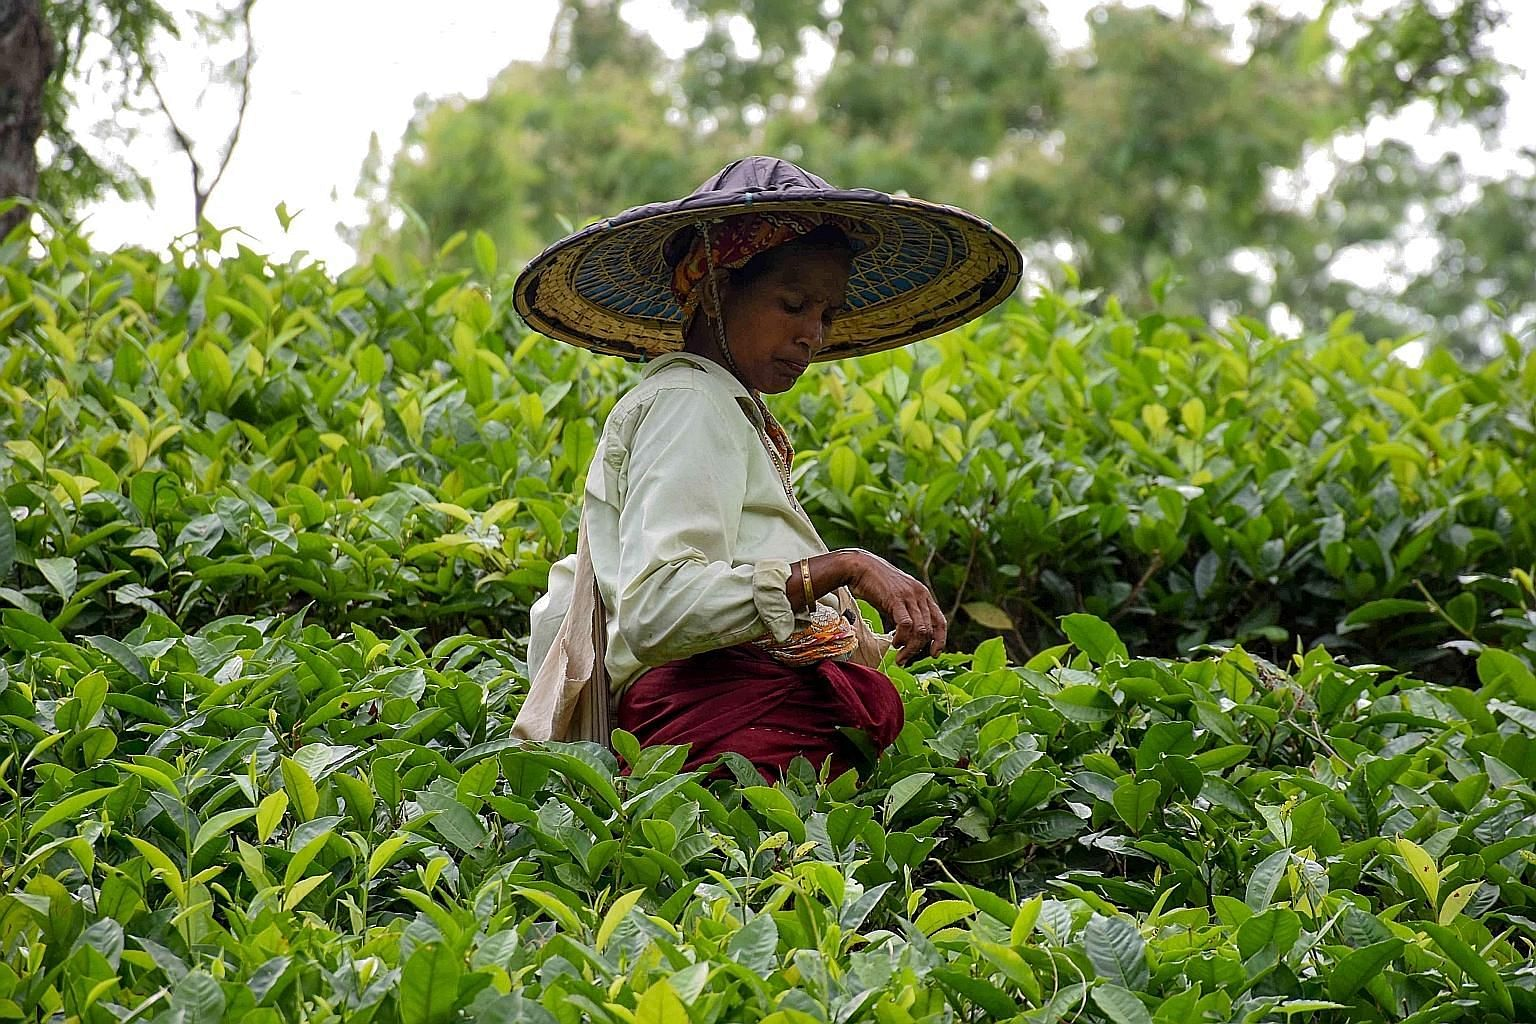 A tea plantation labourer in Agartala, India. The tea market is riddled with counterfeit varieties and adulterated tea, which pose health risks and affect prices. Last month, an Indian company had 40 tonnes of adulterated tea seized from its factory.